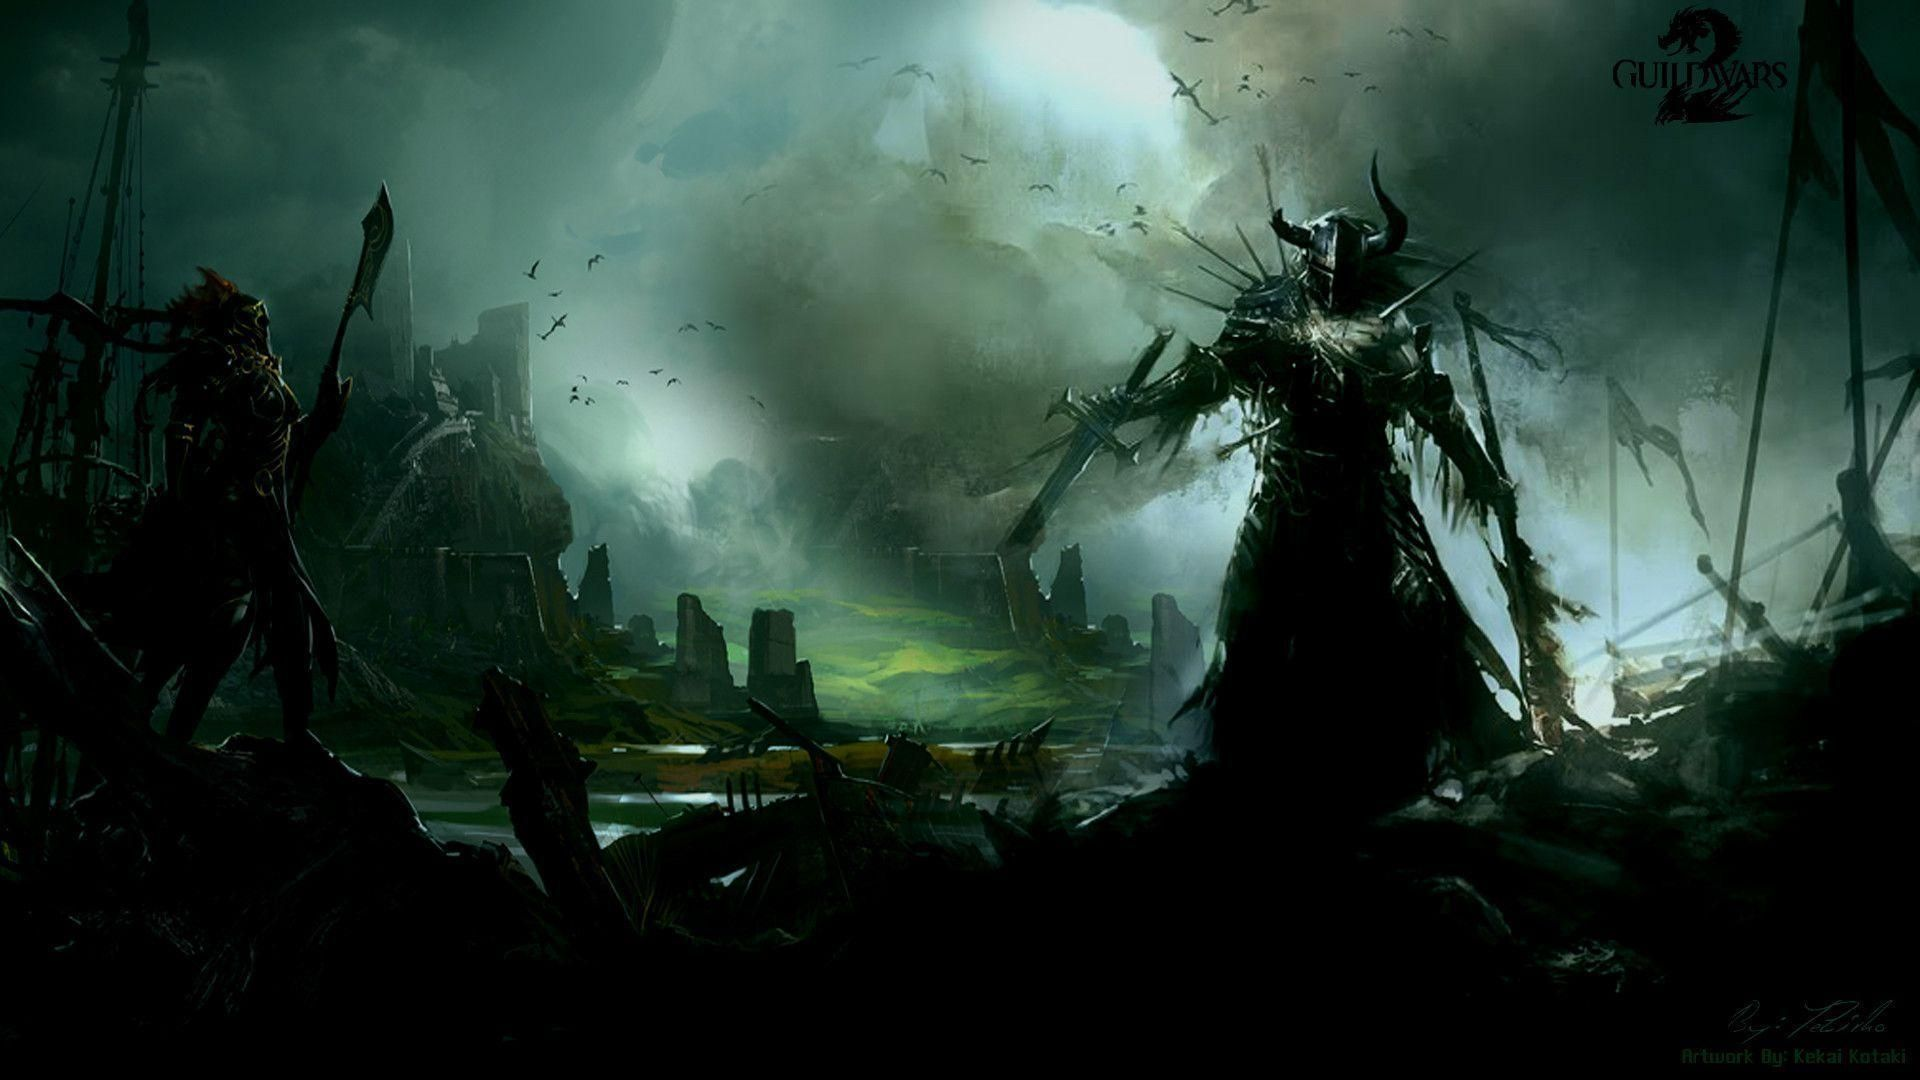 Epic Anime Wallpapers Picture On Wallpaper 1080p HD